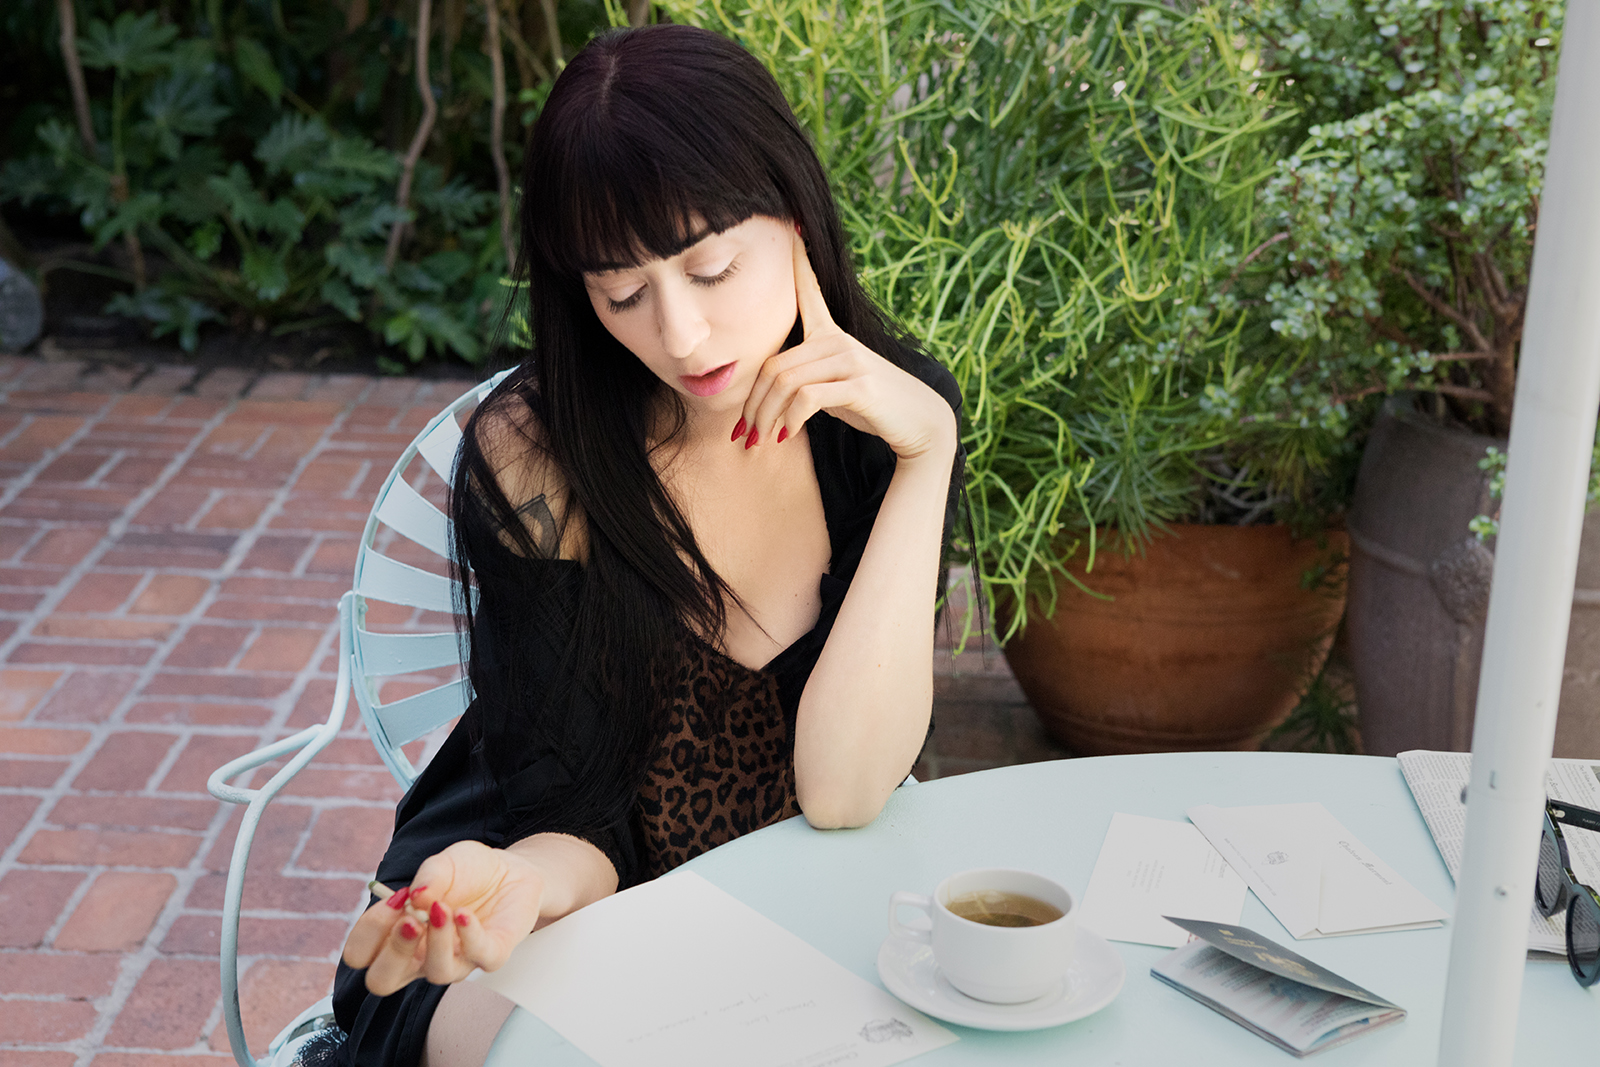 Mistress_Ramona_Ryder_SF_San_Francisco_Escort_Girlfriend_Experience_GFE_Travel_Companion_Passport_Ready_Fly_Me_To_You_University_College_Educated_Reader_Natural_Los_Angeles.jpg